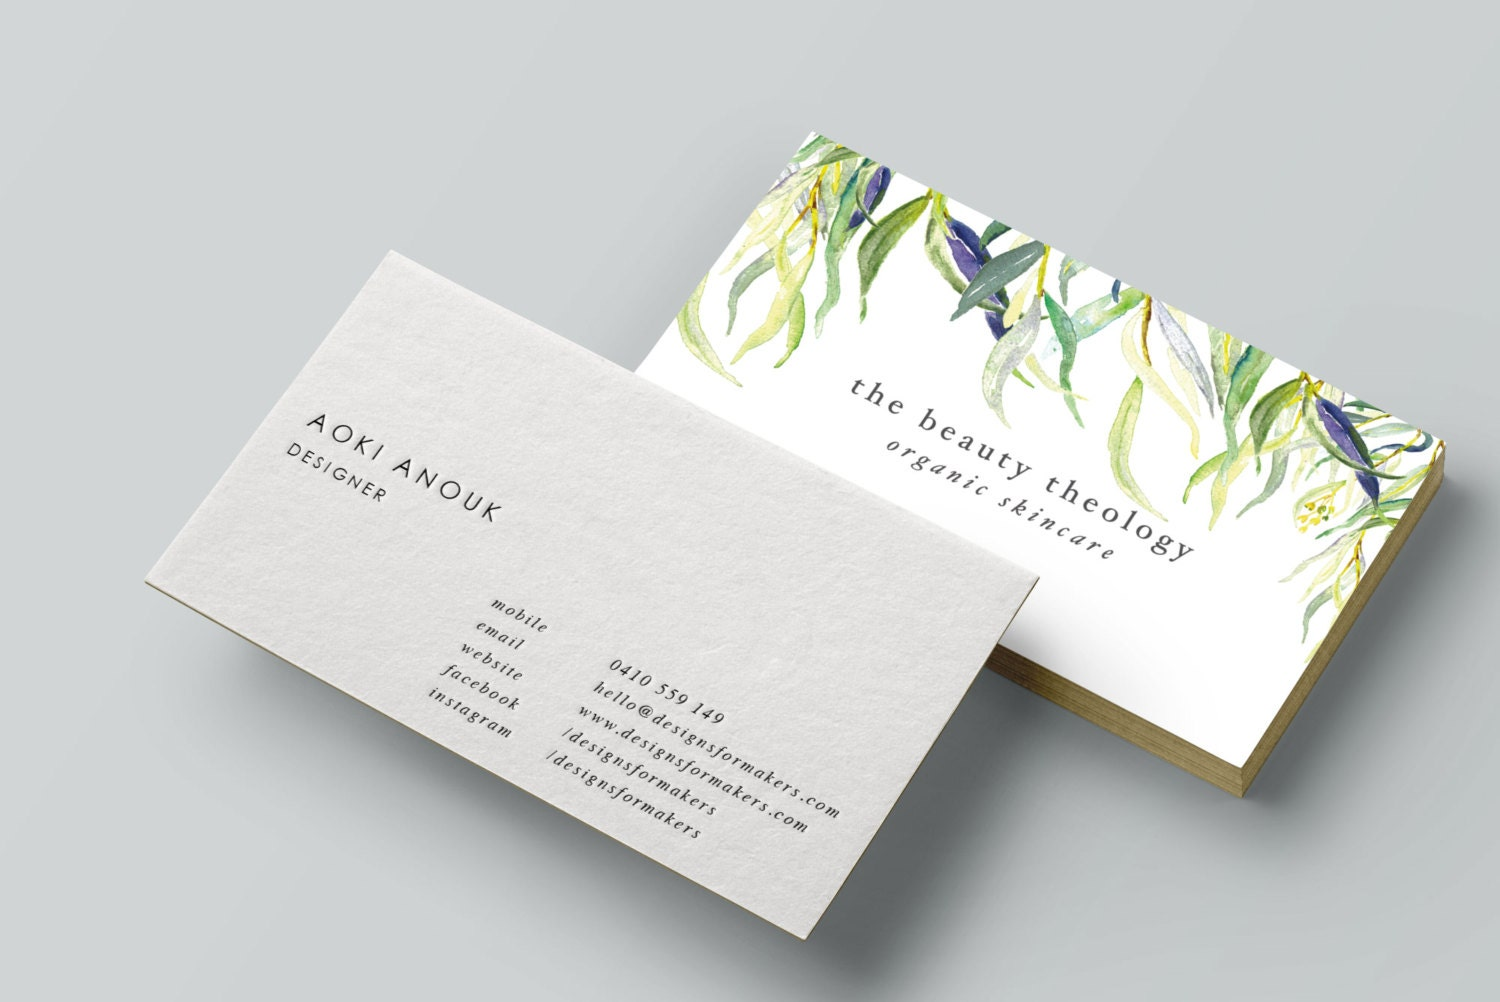 Watercolor Willow Leaves Business Card Premade Business Card